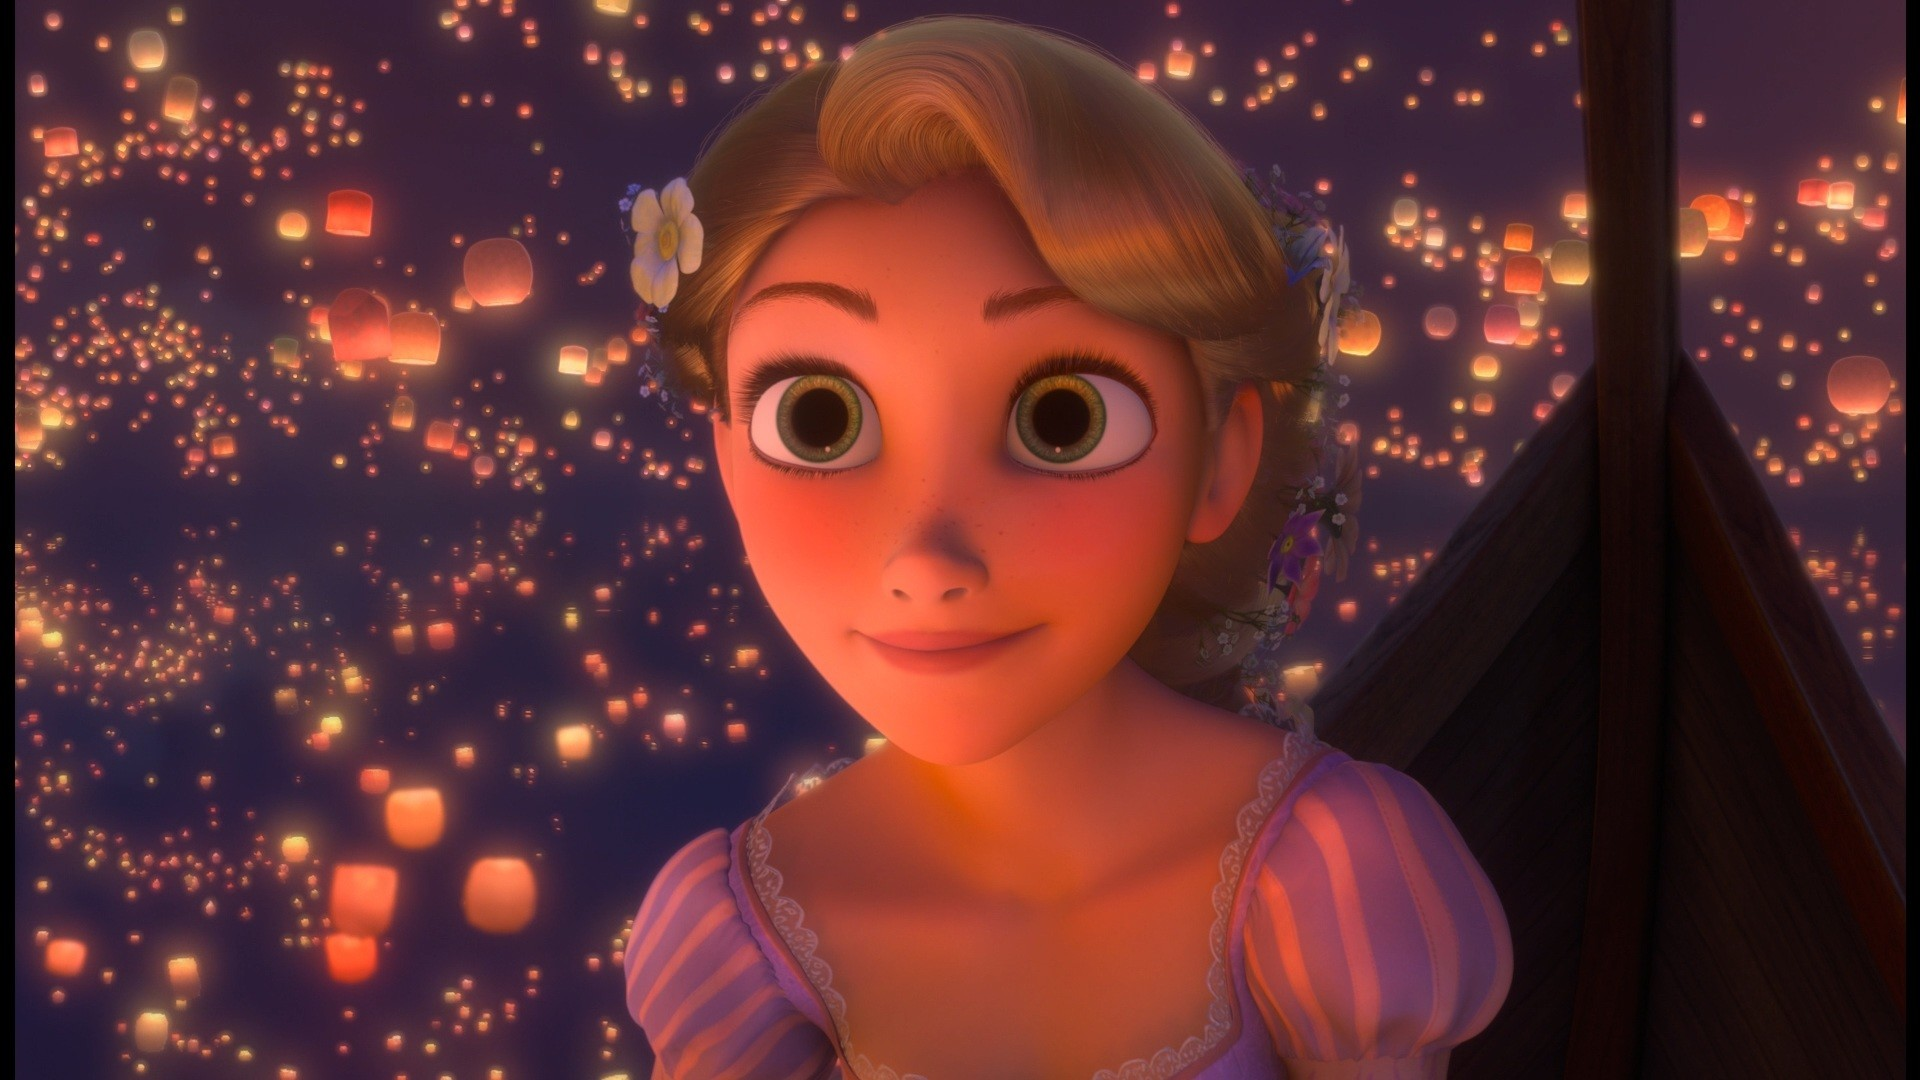 disney tangled backgrounds download free wallpaper wiki; 1080p hd wallpapers  …